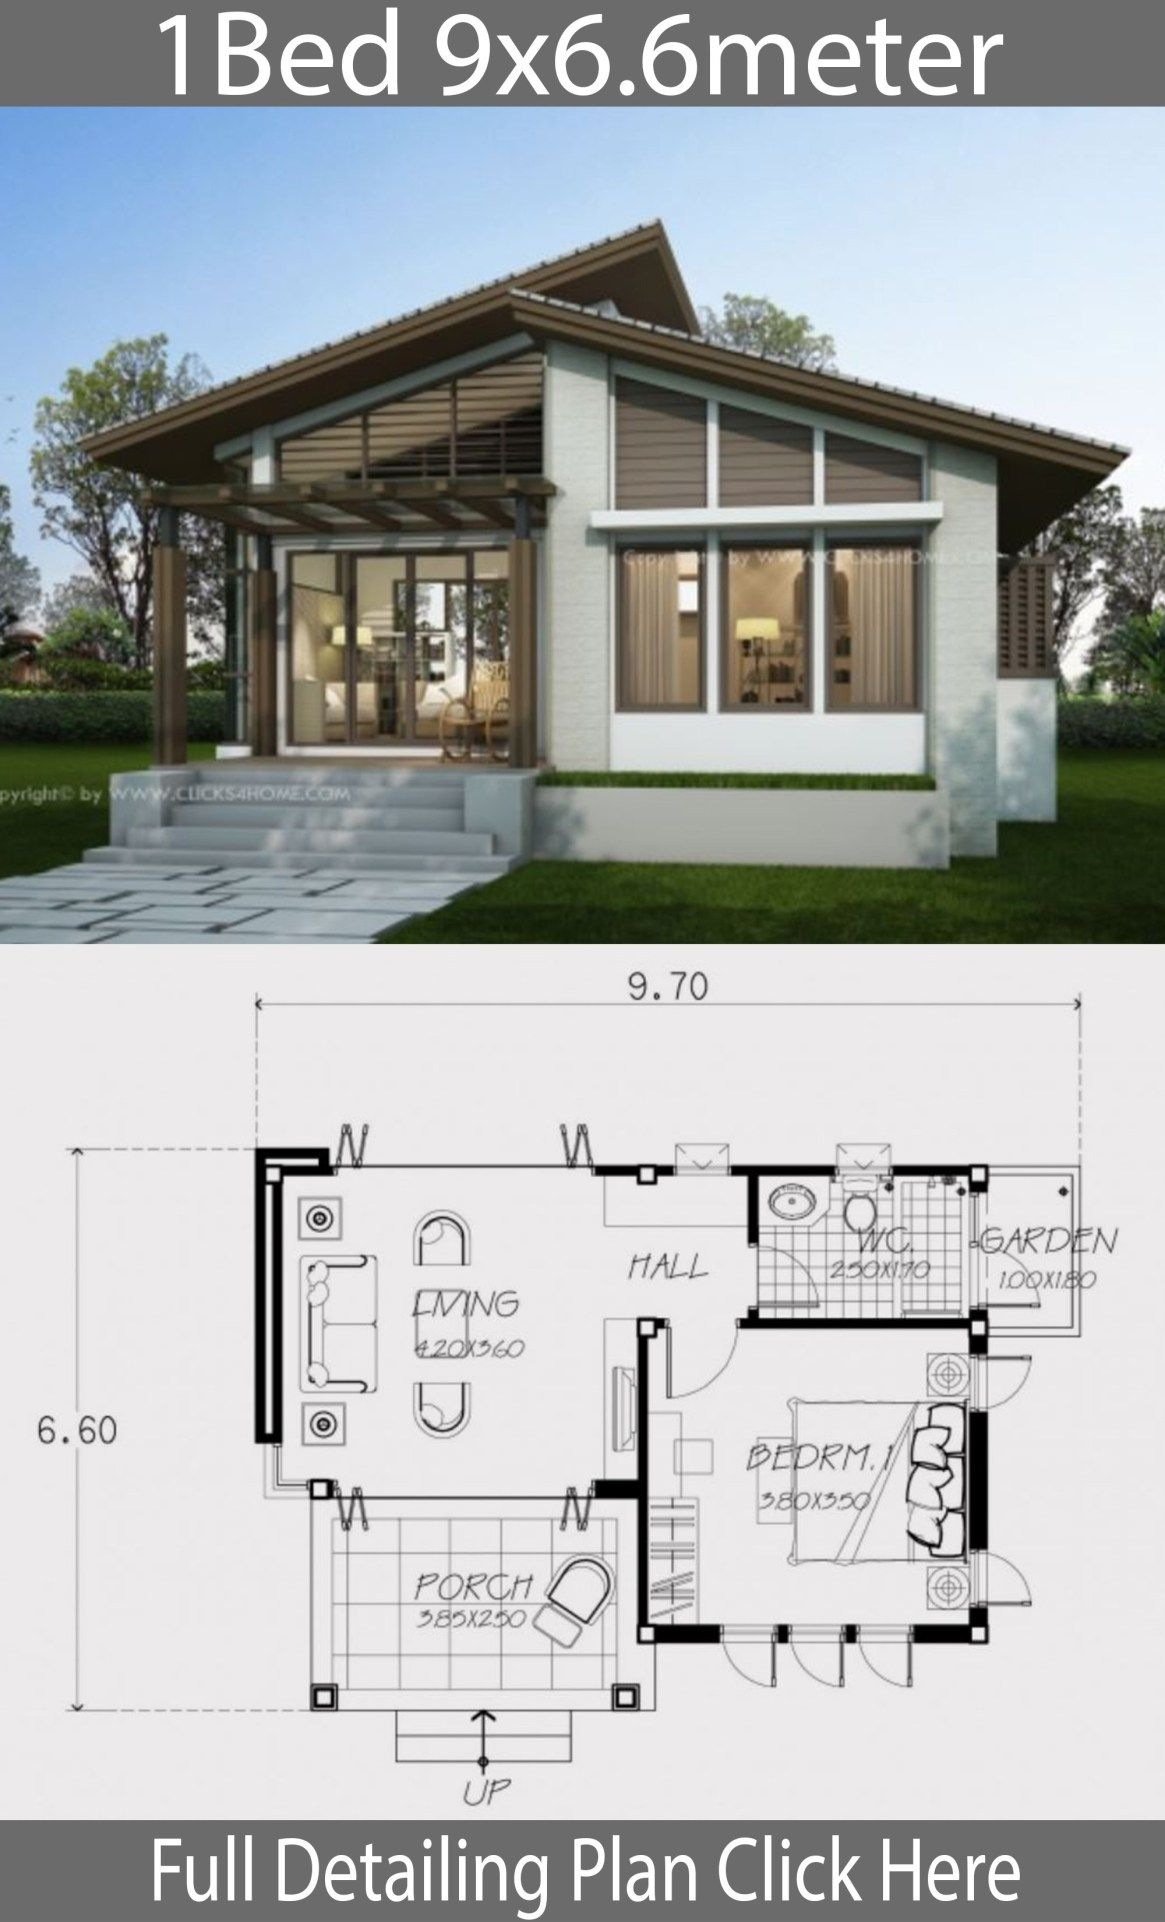 Small Home Design Plan 9x6 6m With One Bedroom Home Design With Plansearch Small House Design Plans Small House Style One Bedroom House